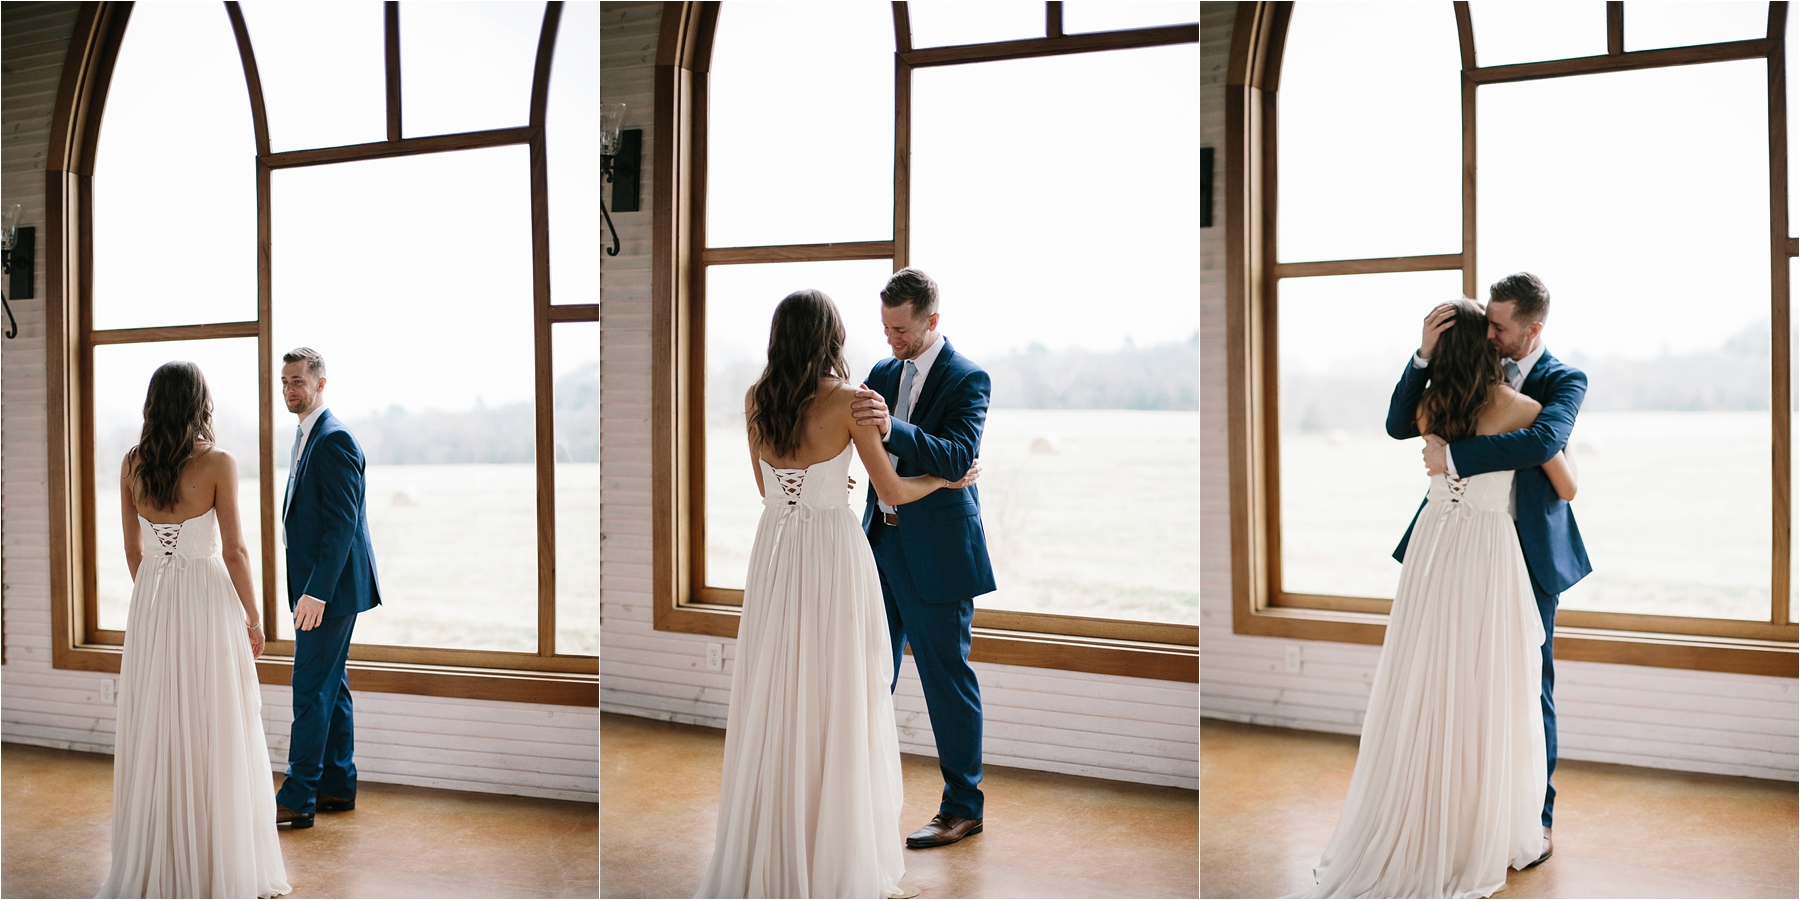 Lauren + Matt __ an intimate, emotional, blush pink, navy blue, and greenery toned wedding accents at the Brooks at Weatherford by North Texas Wedding Photographer Rachel Meagan Photography024